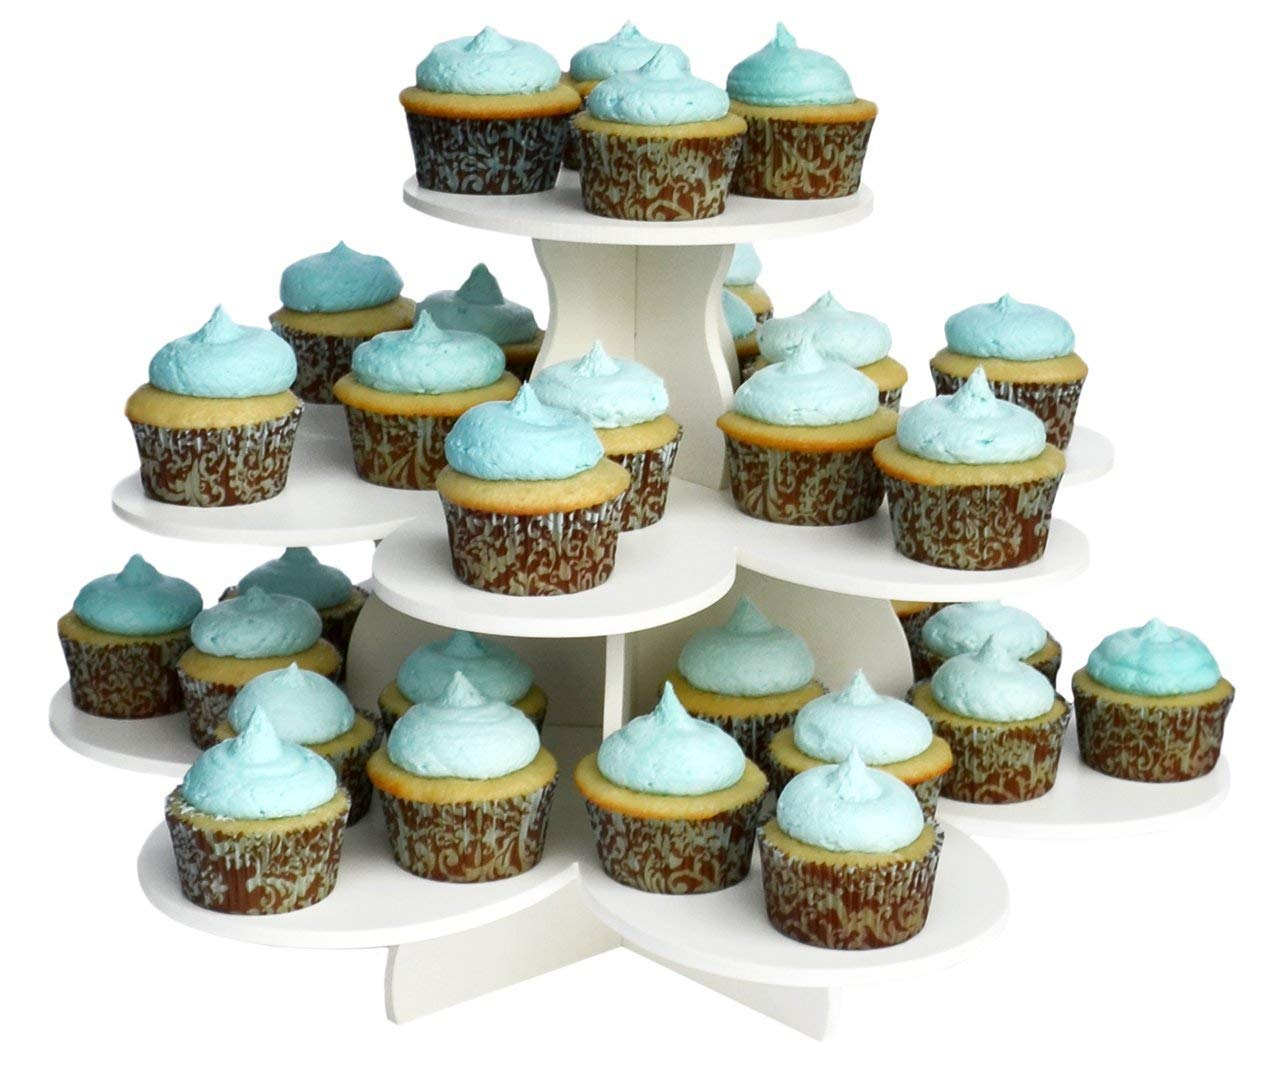 The Smart Baker 3 Tier Flower Cupcake Tower Stand Holds 48+ Cupcakes''As Seen on Shark Tank'' Cupcake Stand by The Smart Baker